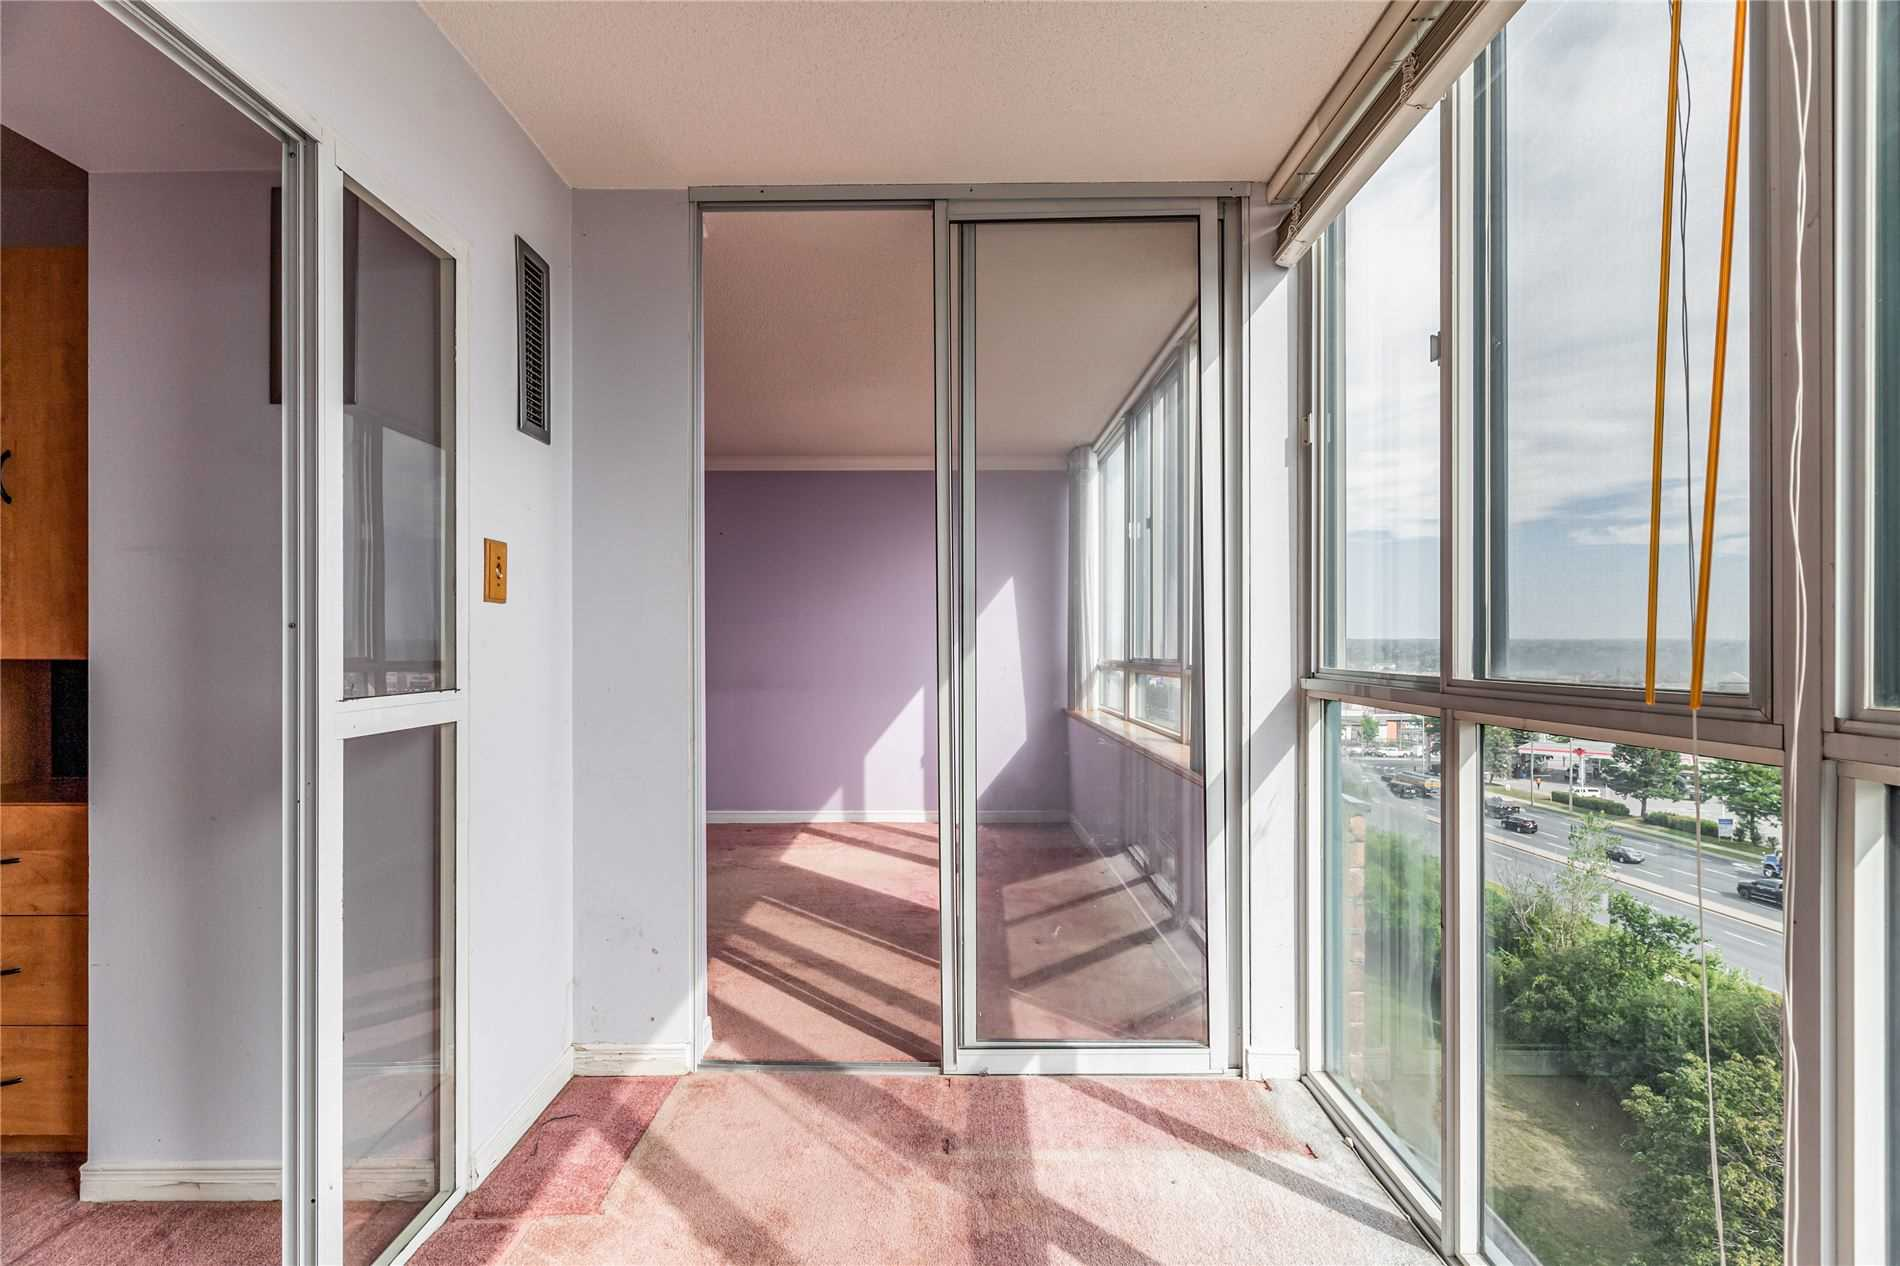 Image 10 of 40 showing inside of 2 Bedroom Condo Apt Apartment for Sale at 1665 Pickering Pkwy Unit# 812, Pickering L1V6L4